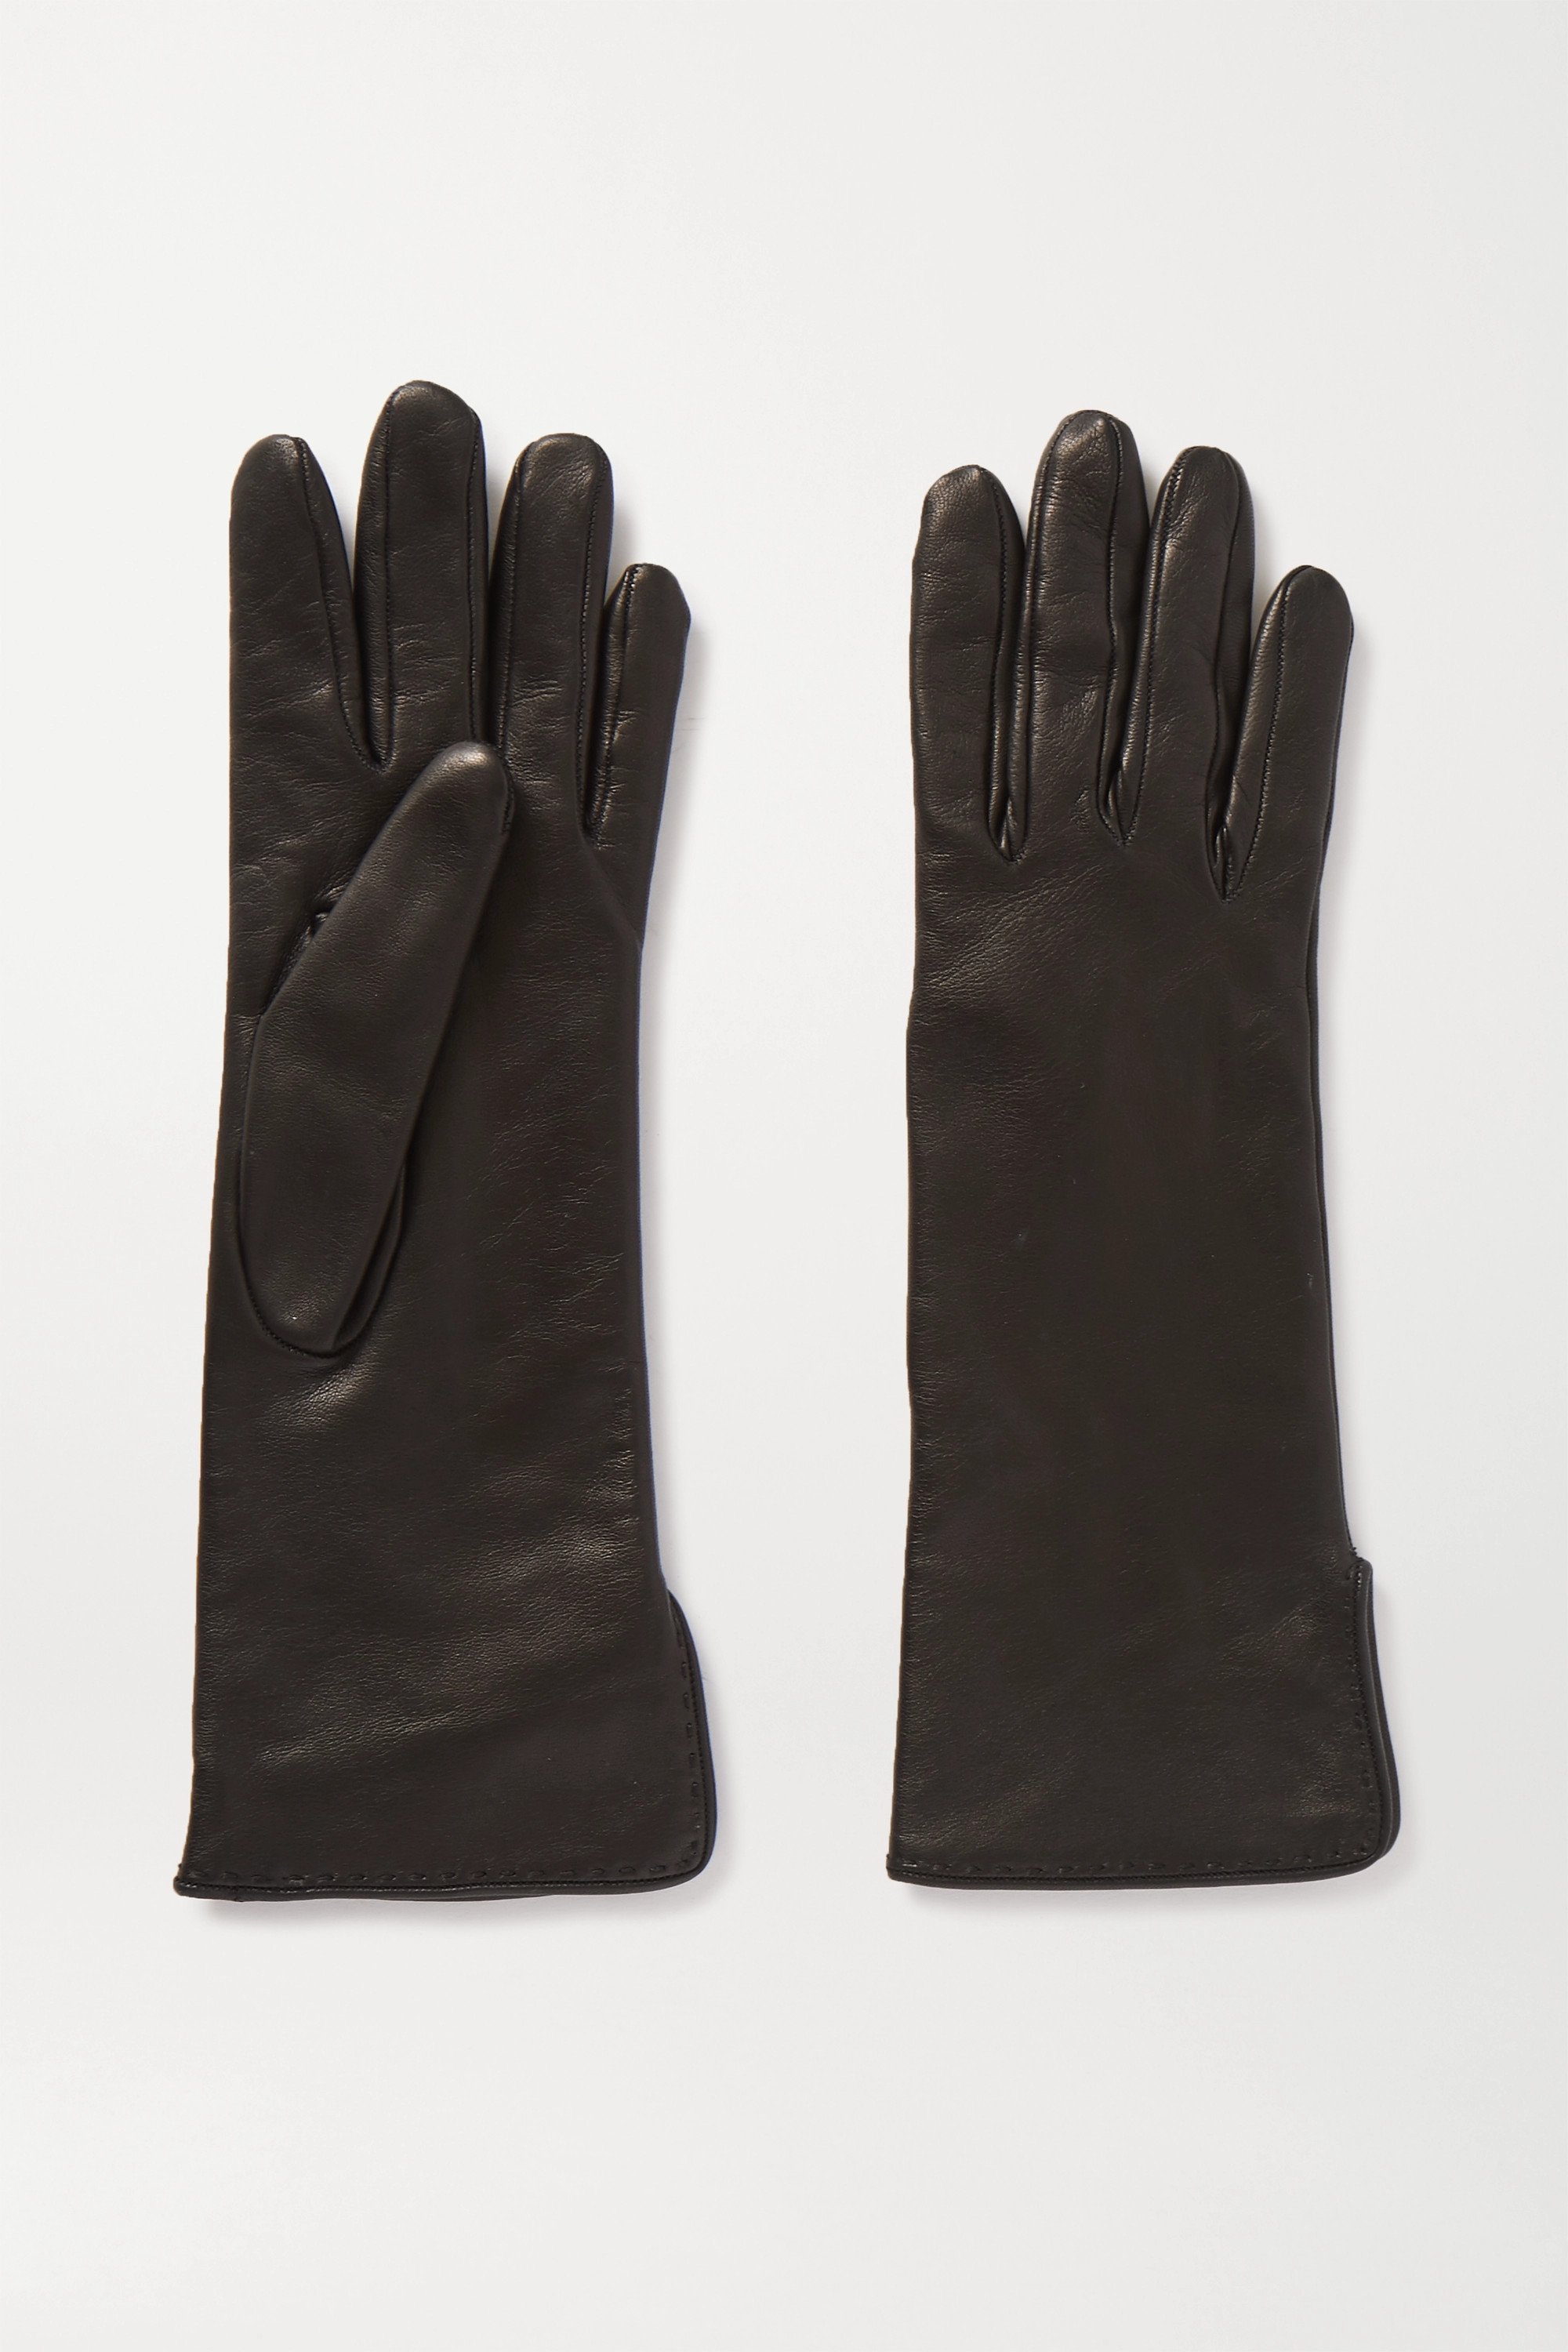 Loro Piana Leather gloves